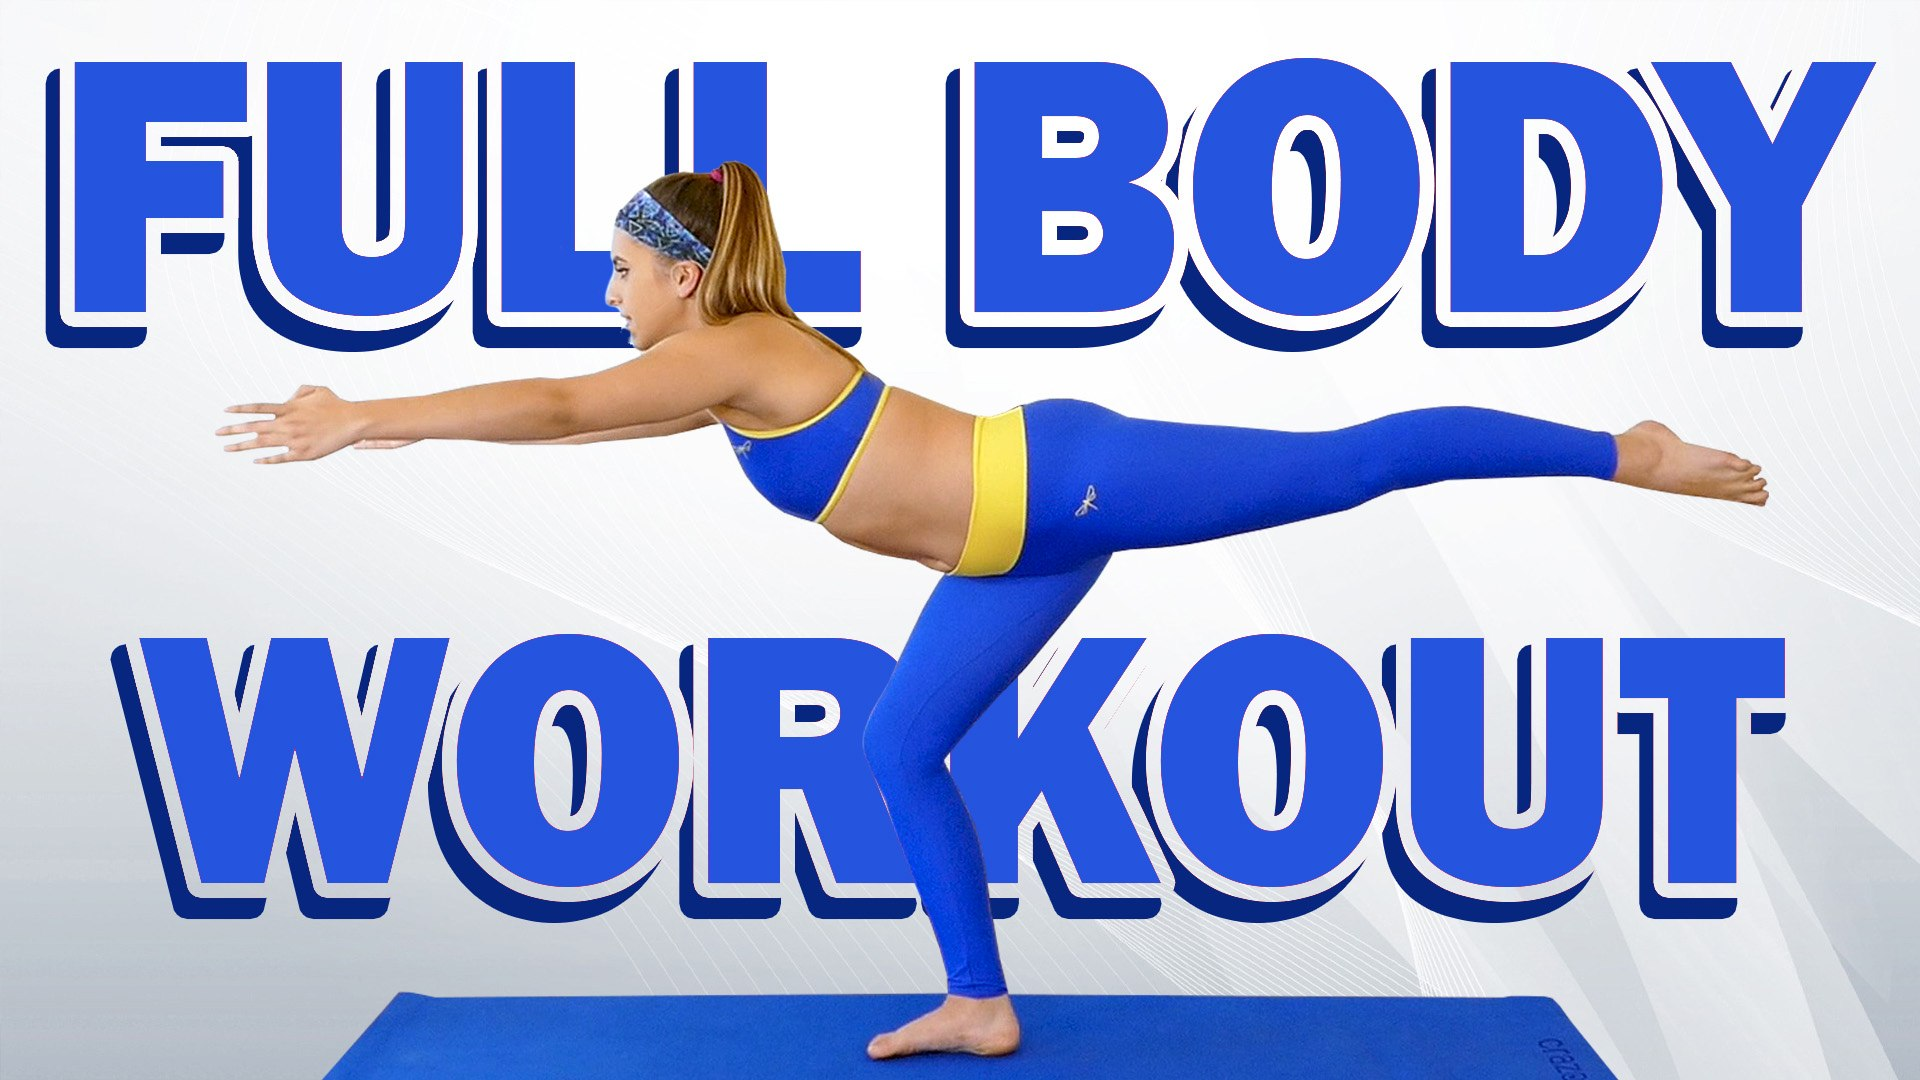 Flexible & Fit! Total Body Workout  & Flexibility Routine with Nico, Beginners At Home Exerc